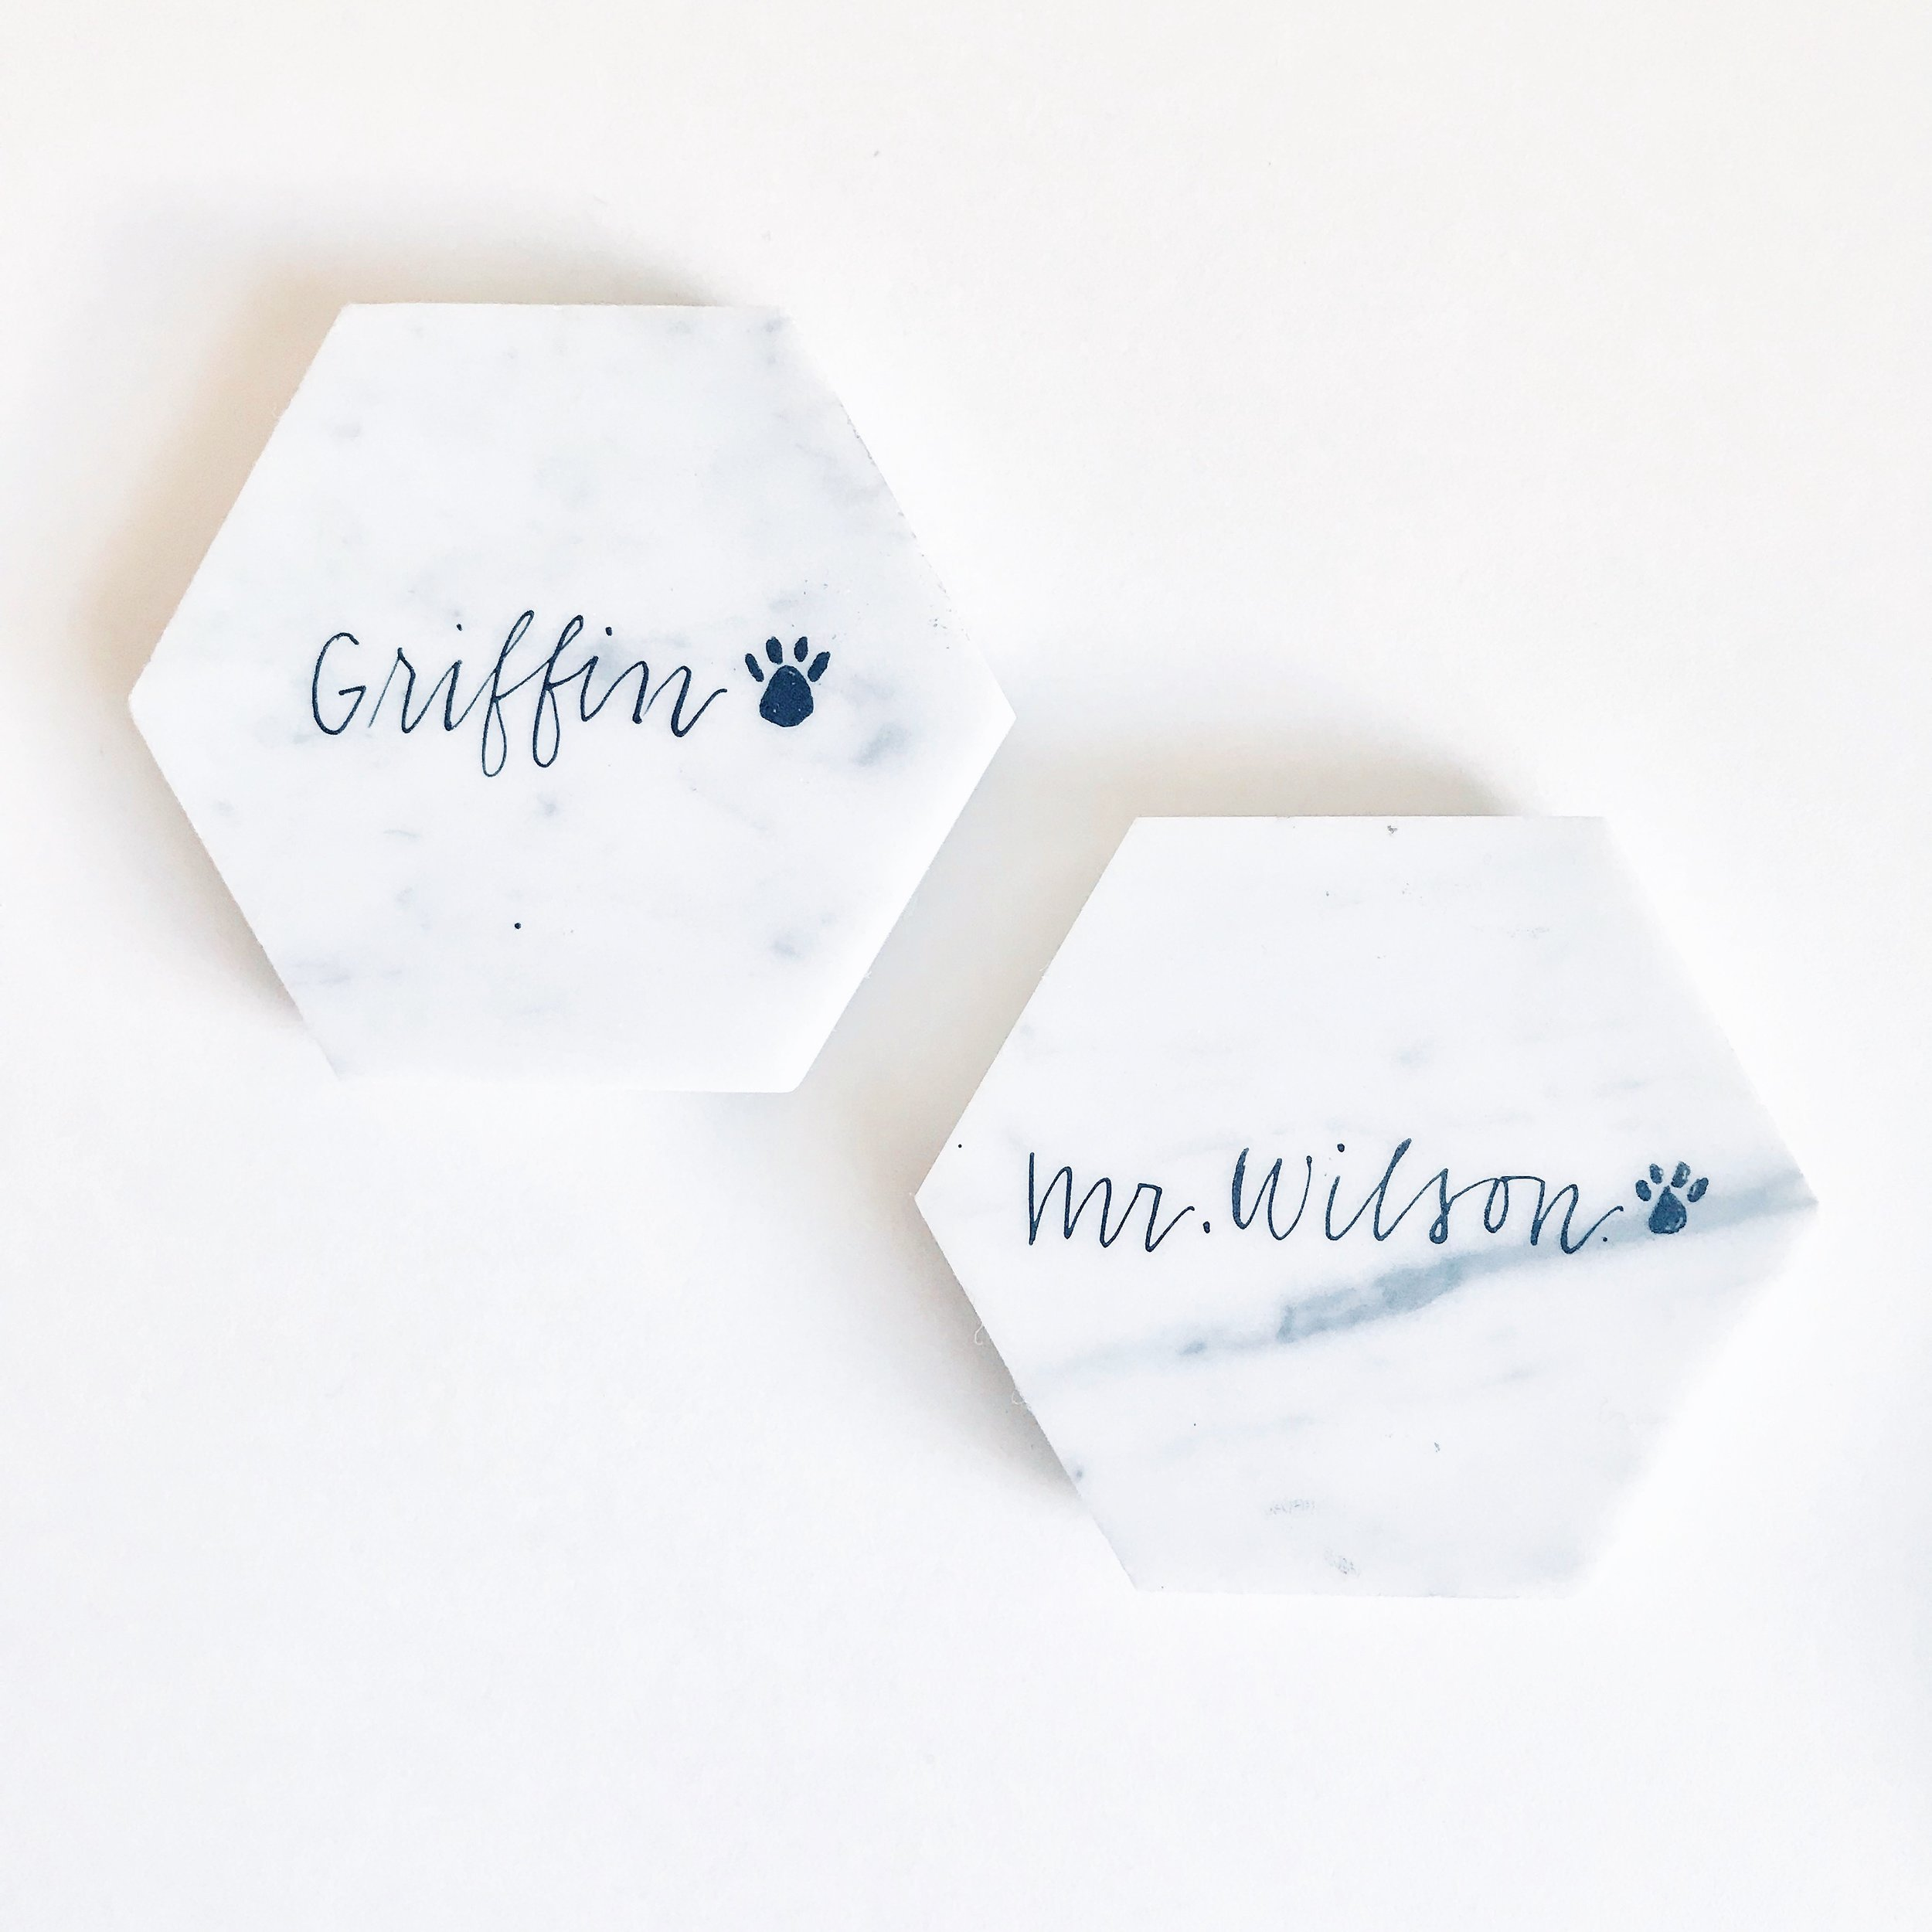 Custom Coasters by Priscilla Anne